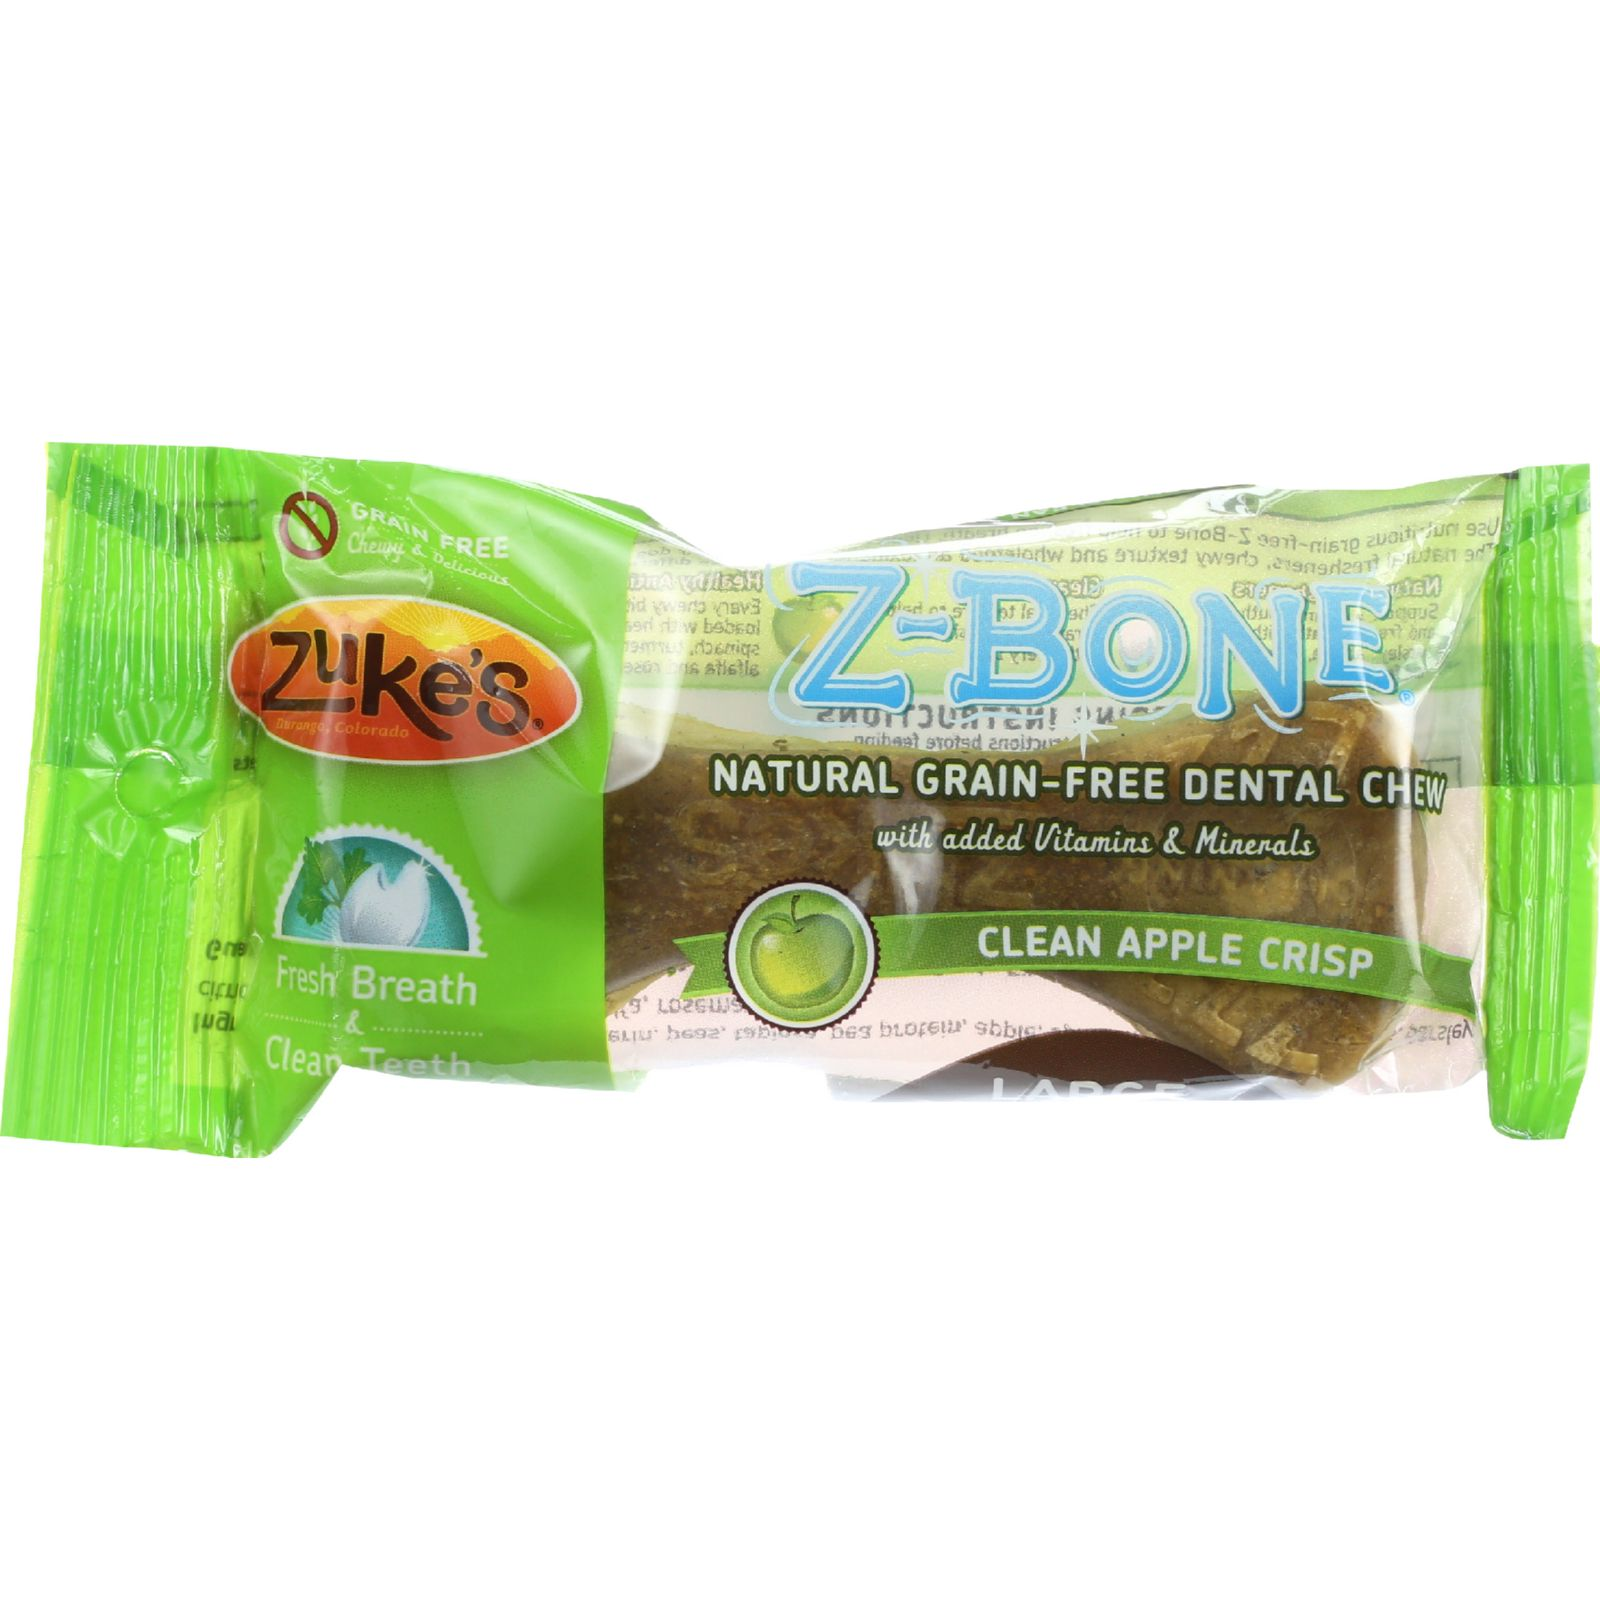 Zukes Counter Display - Dental Chews - Z-bones - Clean Apple Crisp - Large Dogs - 2.5 Oz - Case Of 18